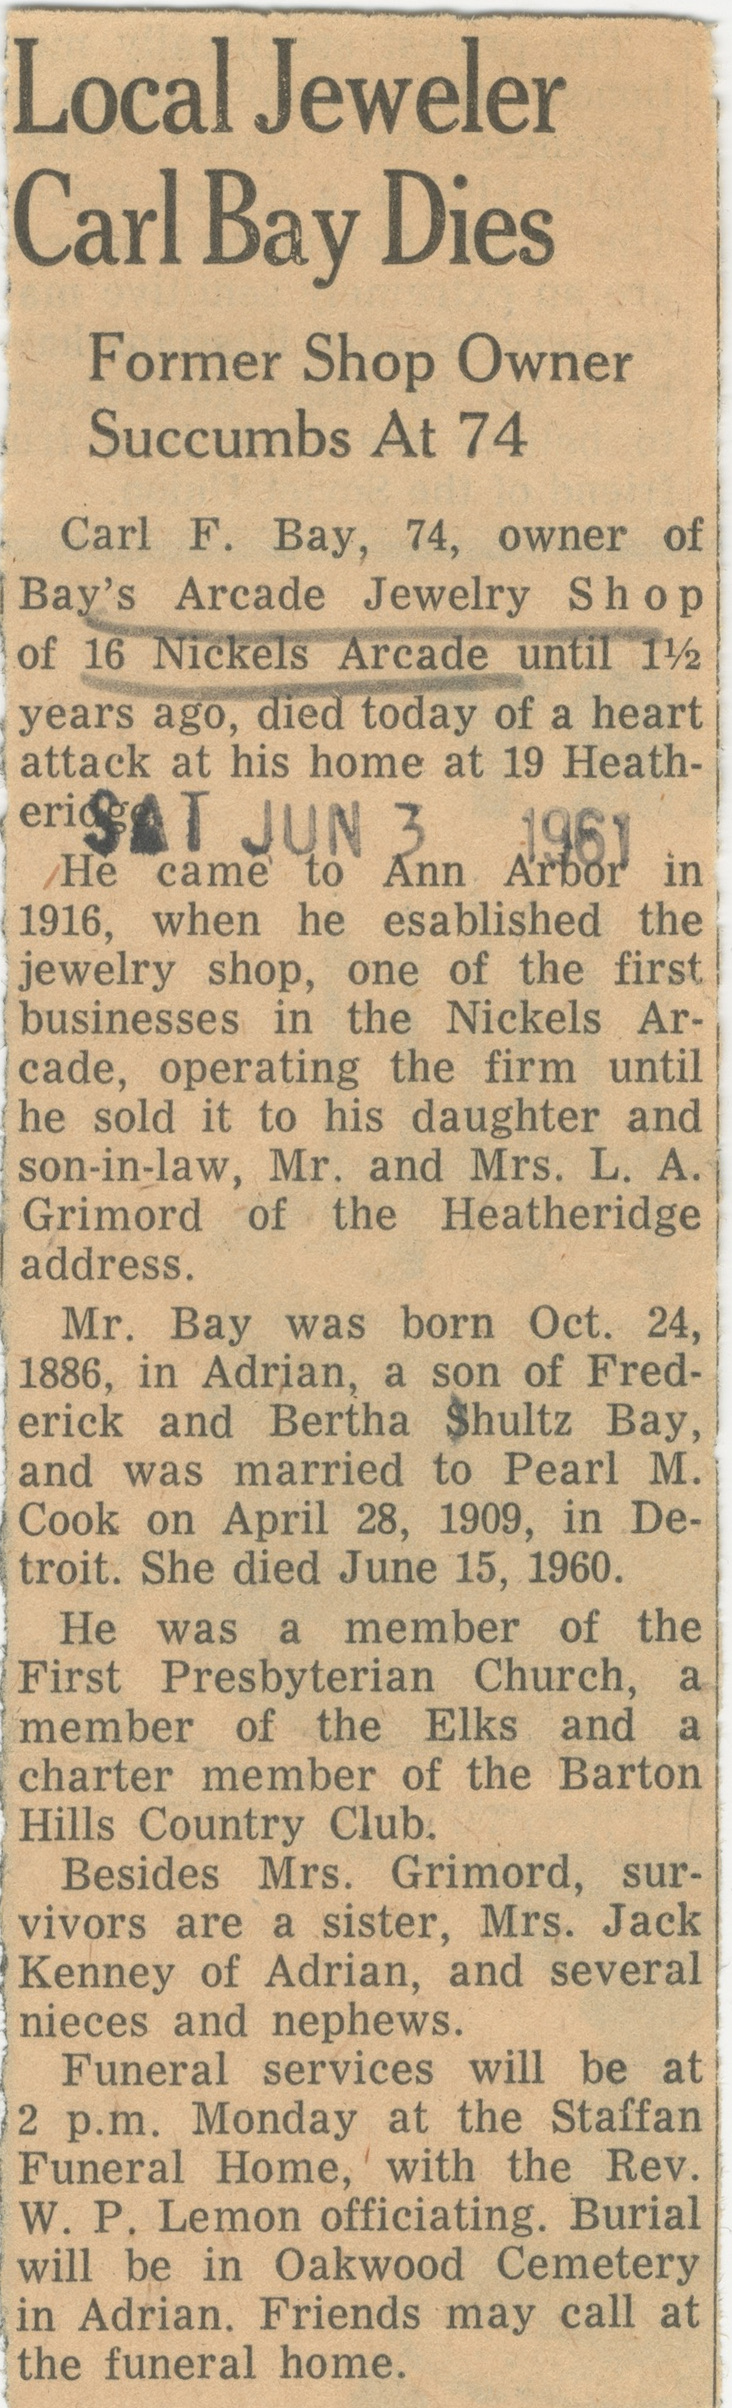 Local Jeweler Carl Bay Dies image